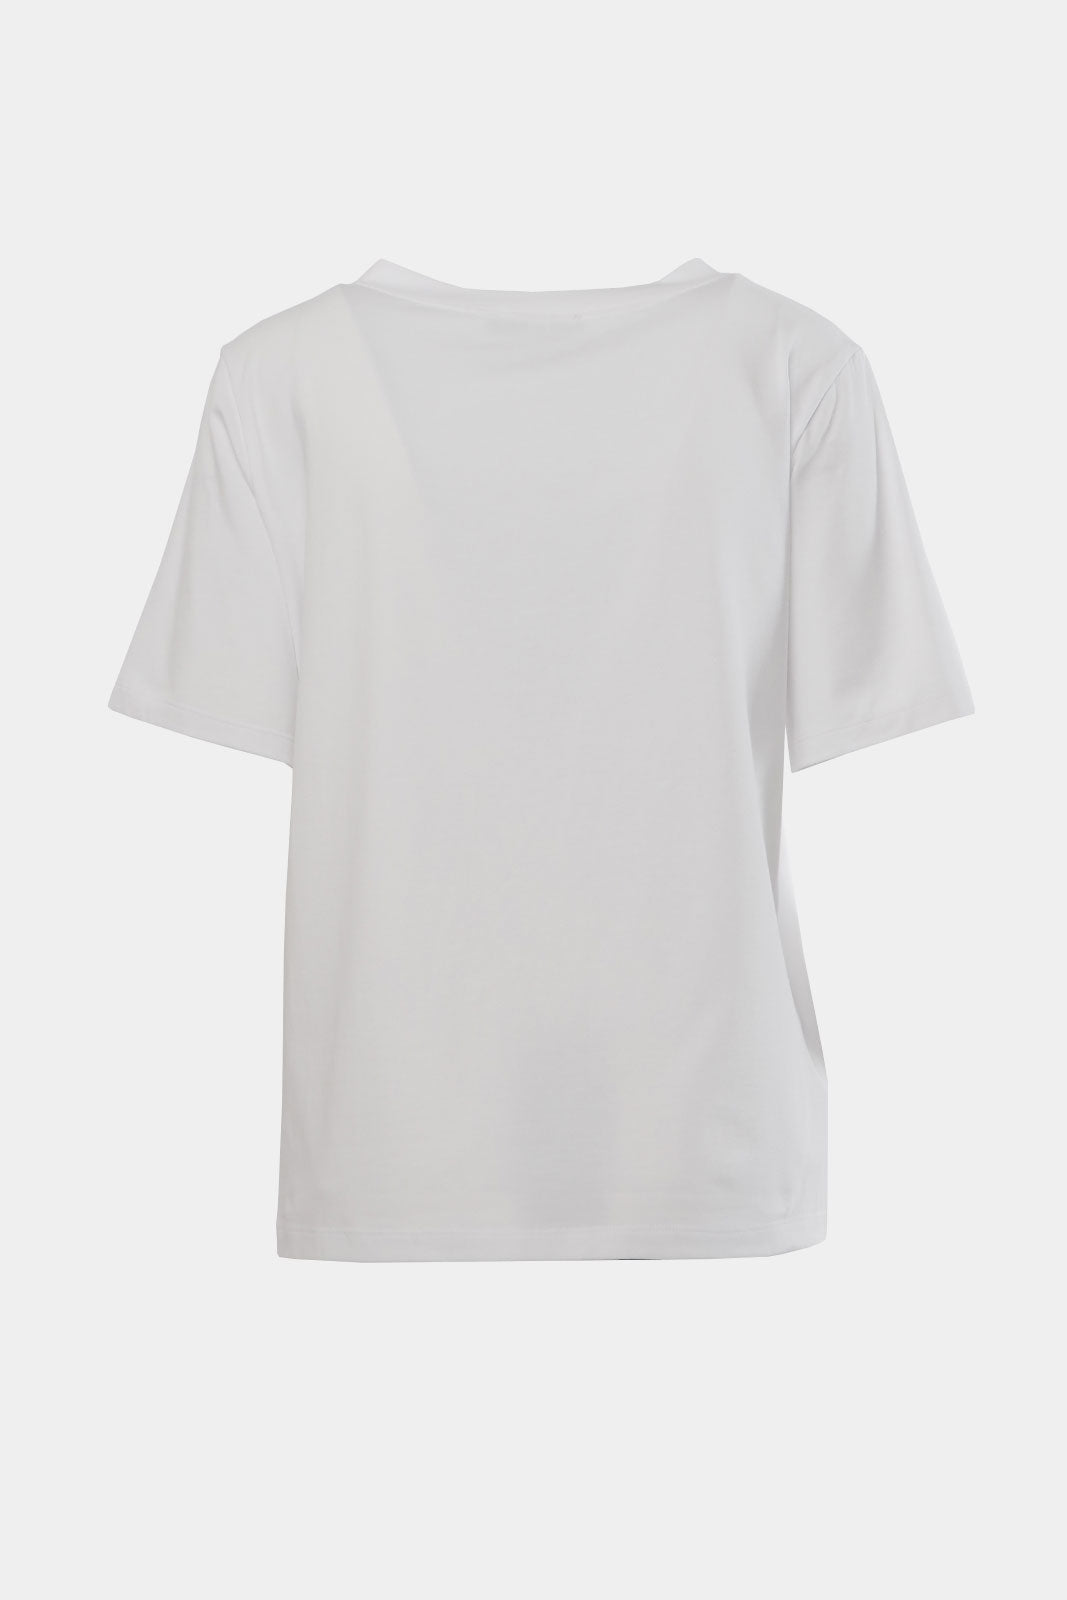 Wonderland | Pure white cotton quote t-shirt